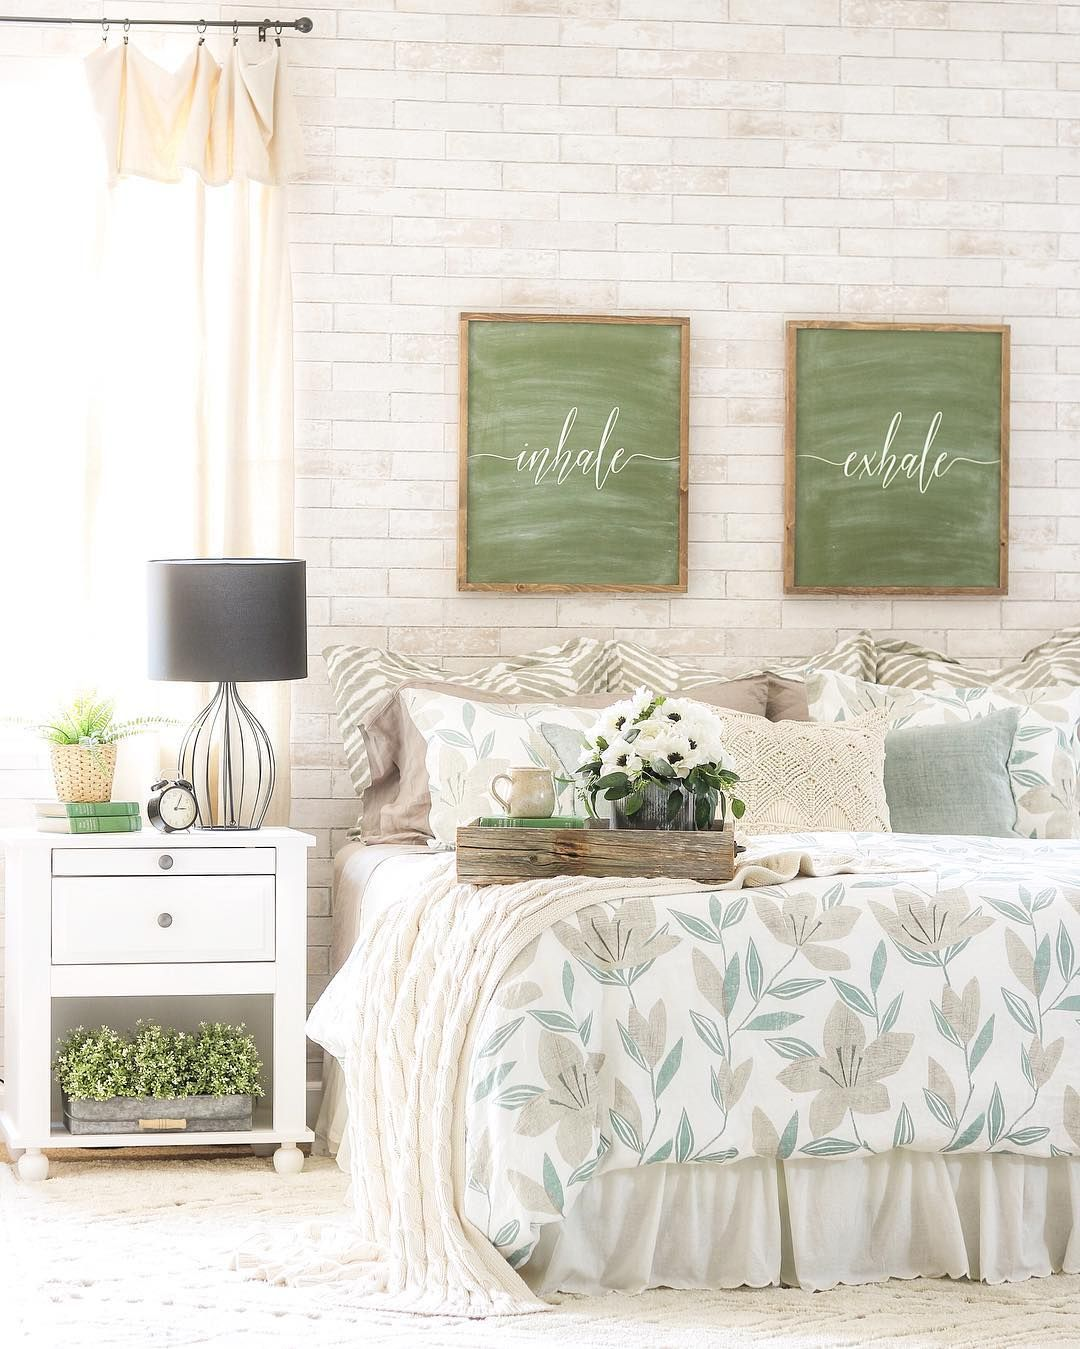 The colors of this sweet green, white, and cream bedroom